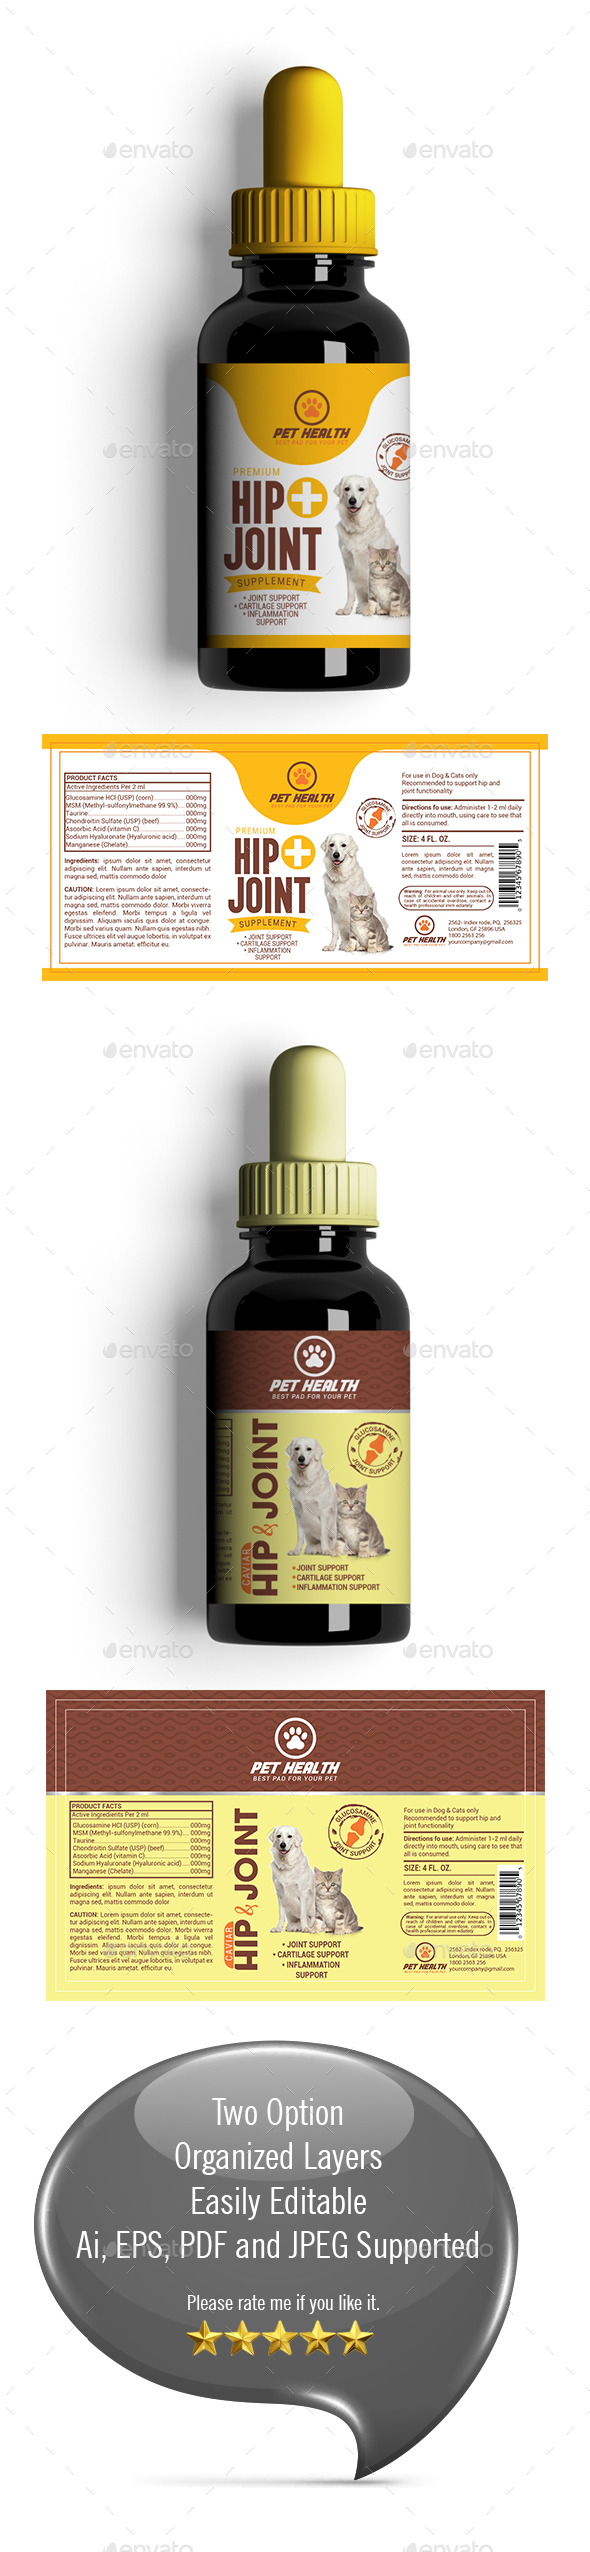 GraphicRiver Dog Hip & Joint Supplement Label-01 20336072